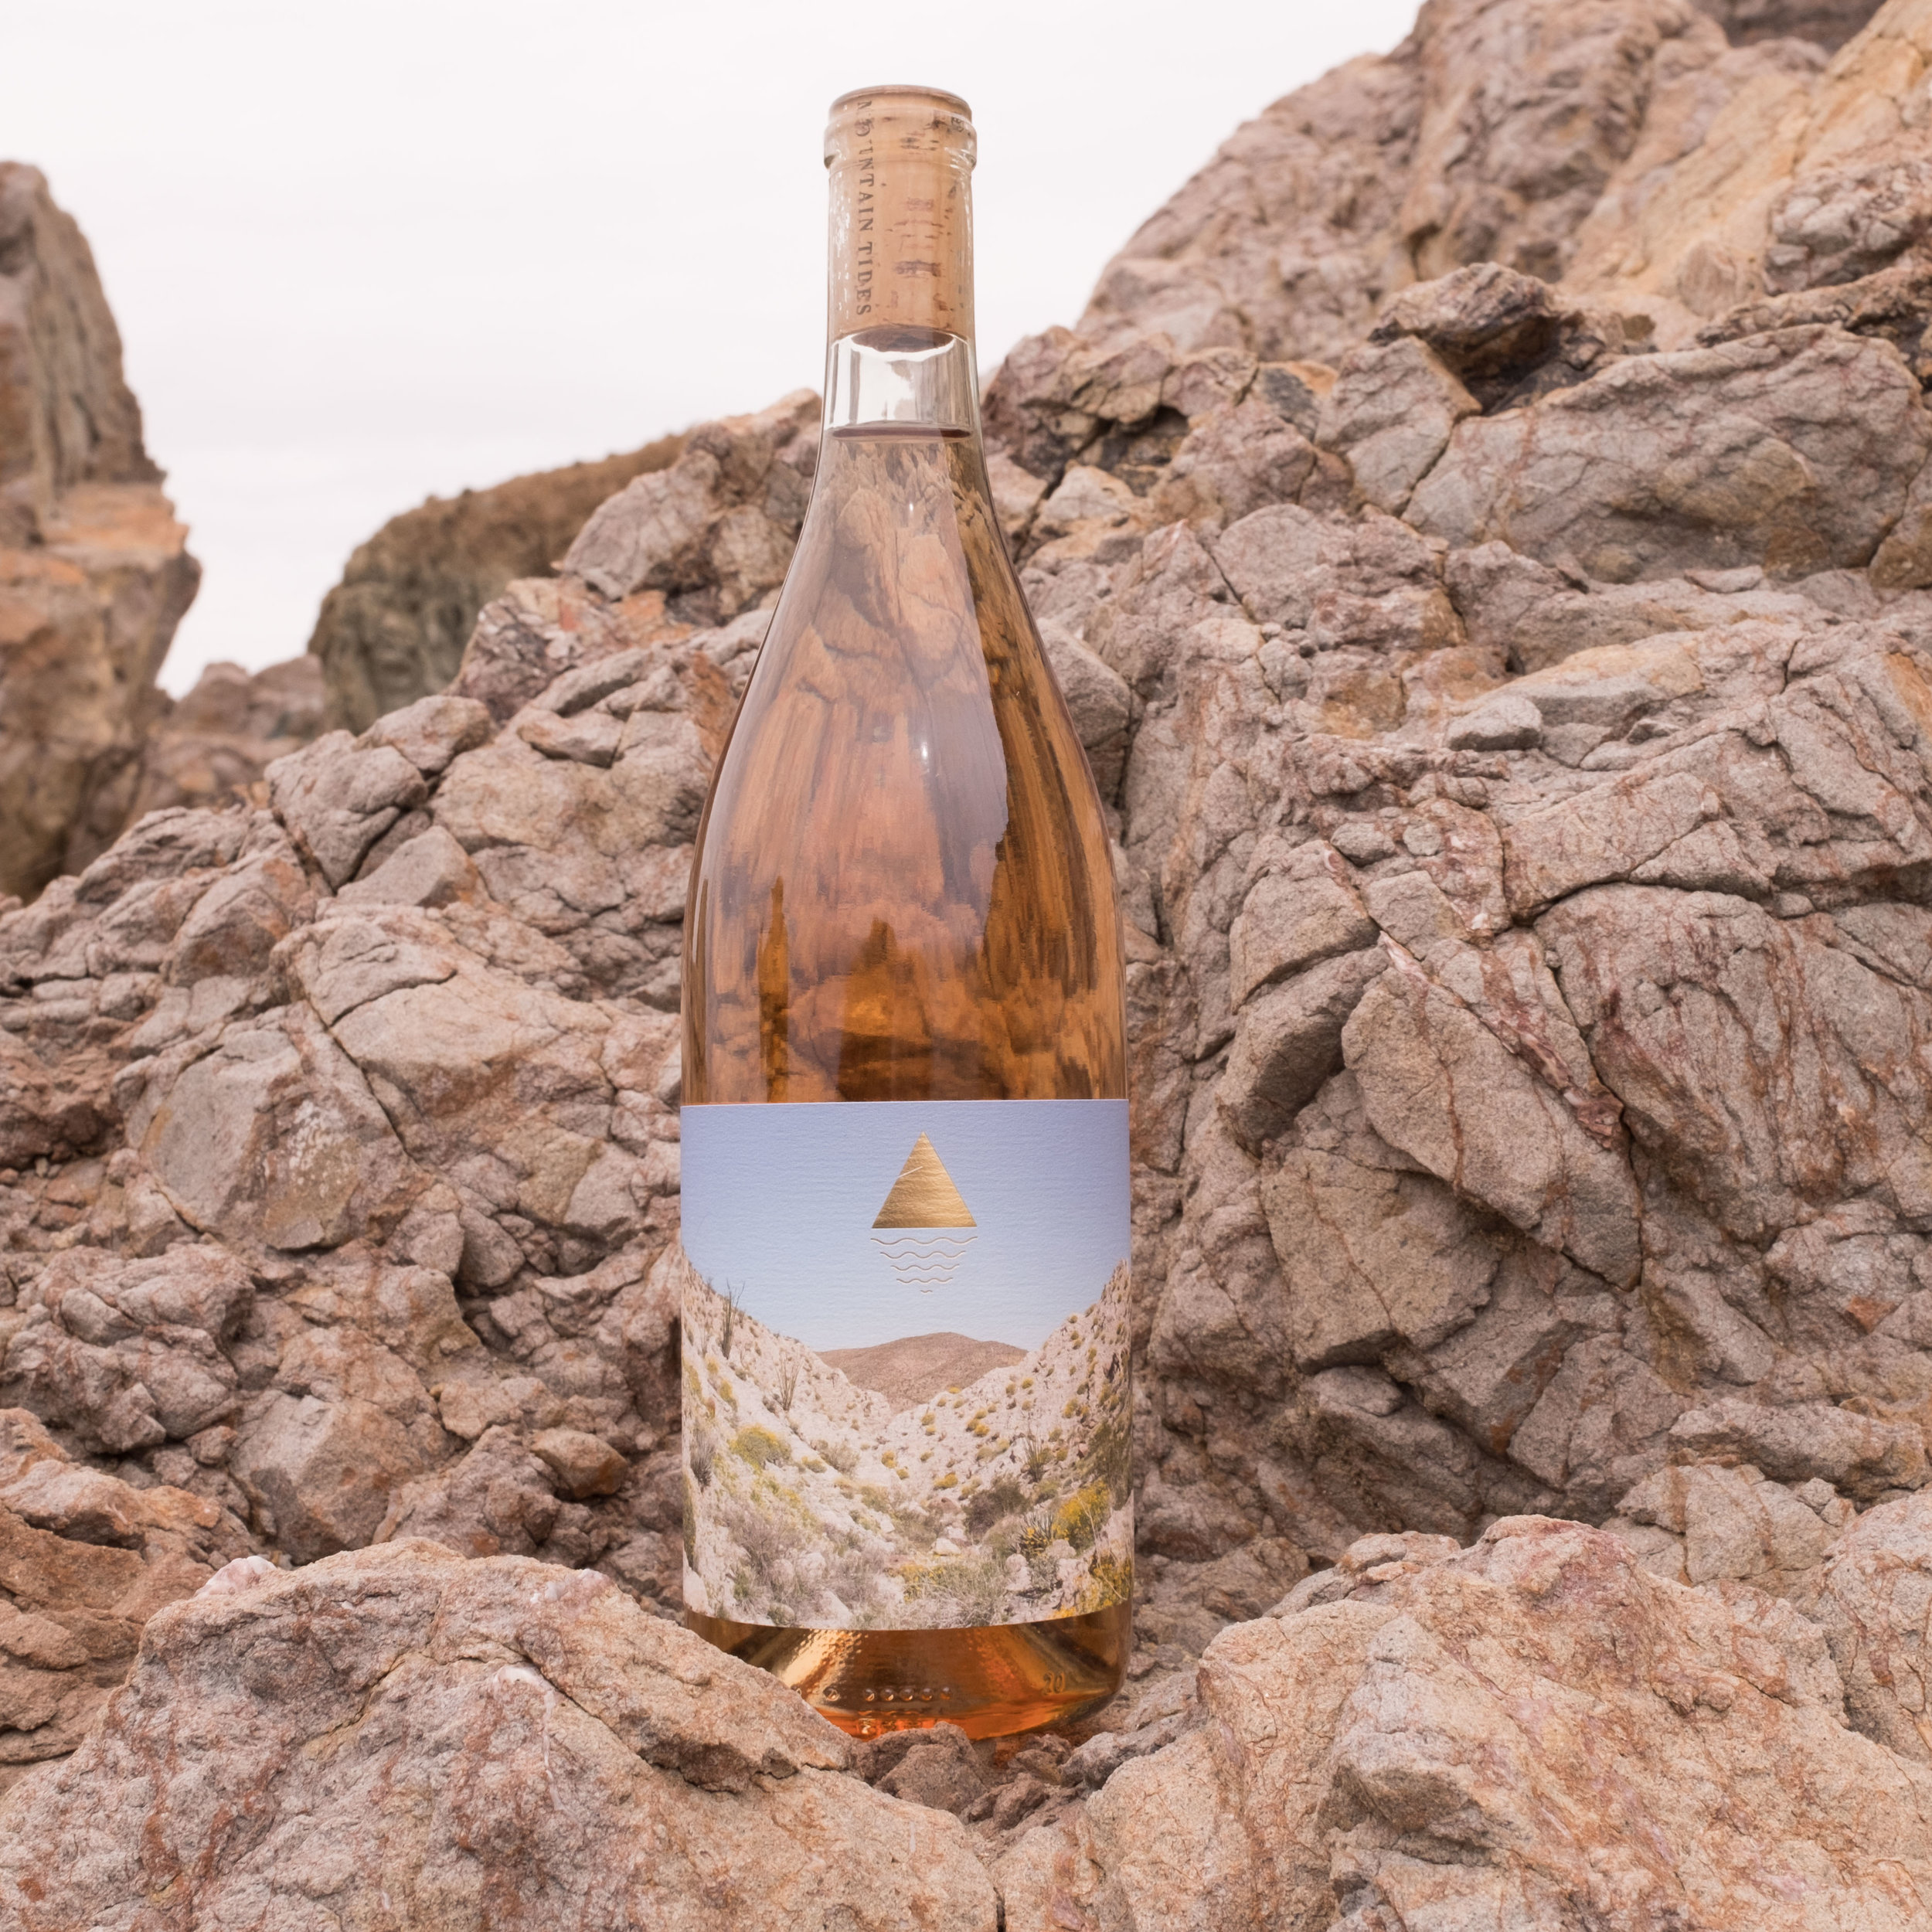 mountain-tides-wine-rose-california-wine-rosé-of-petite-sirah-new-california-wine.jpg